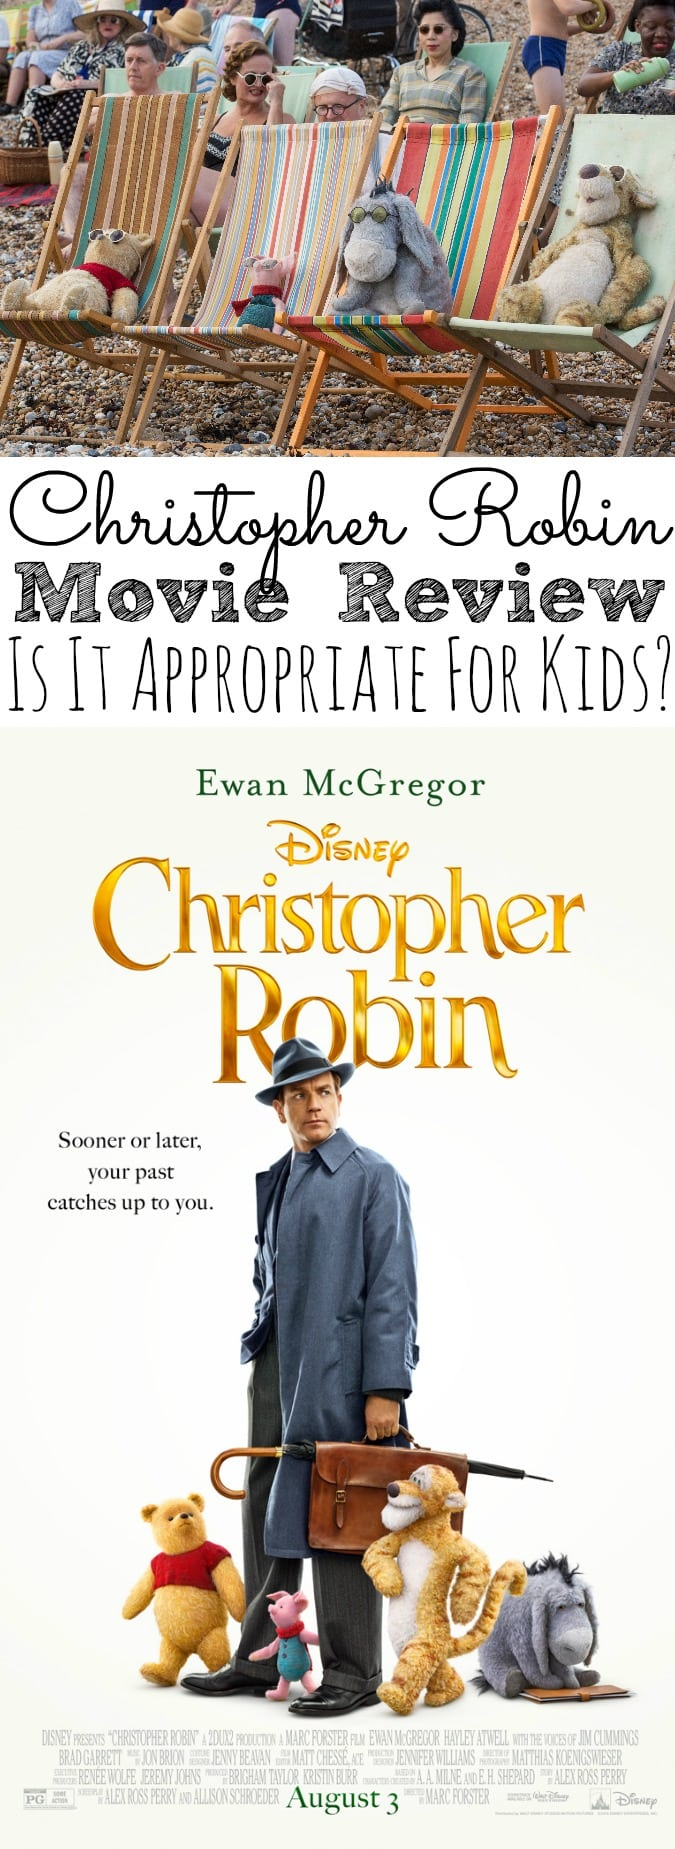 Christopher Robin Movie Review | Is It Appropriate For Kids? Is Disney's new live-action film Christopher Robin appropriate for kids and families to watch? I have a no spoiler Christopher Robin movie review for kids. #ChristopherRobin - simplytodaylife.com